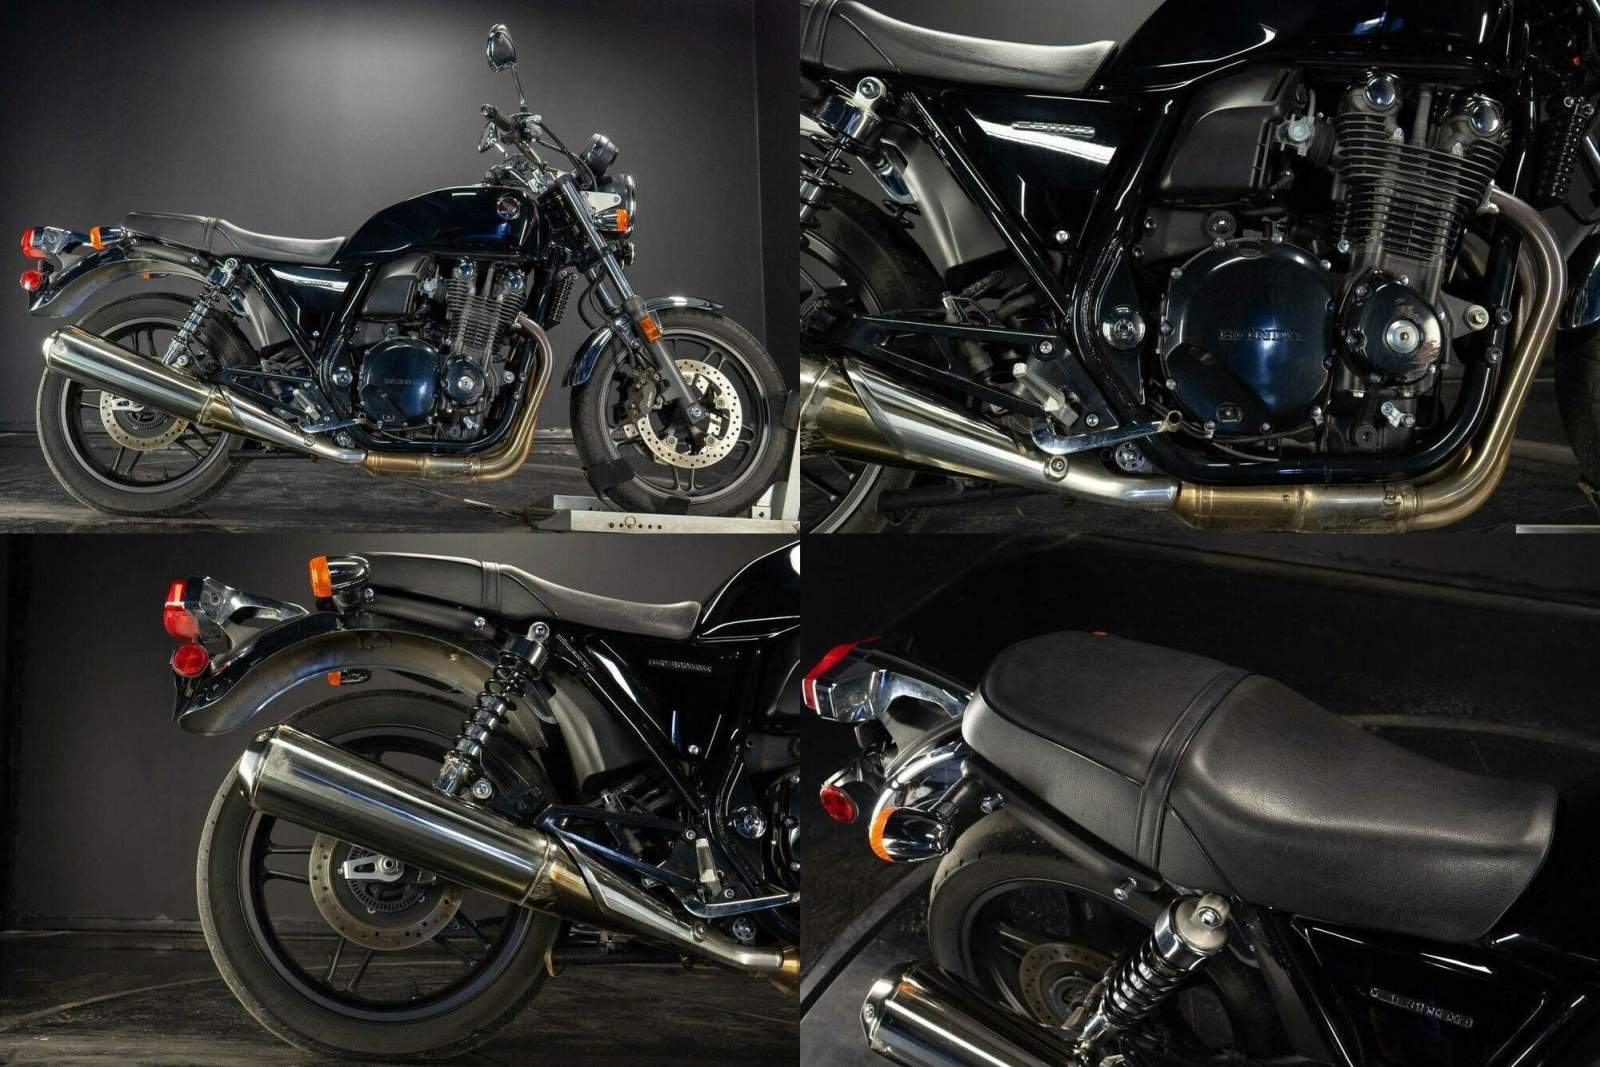 2014 Honda CB BLK used for sale